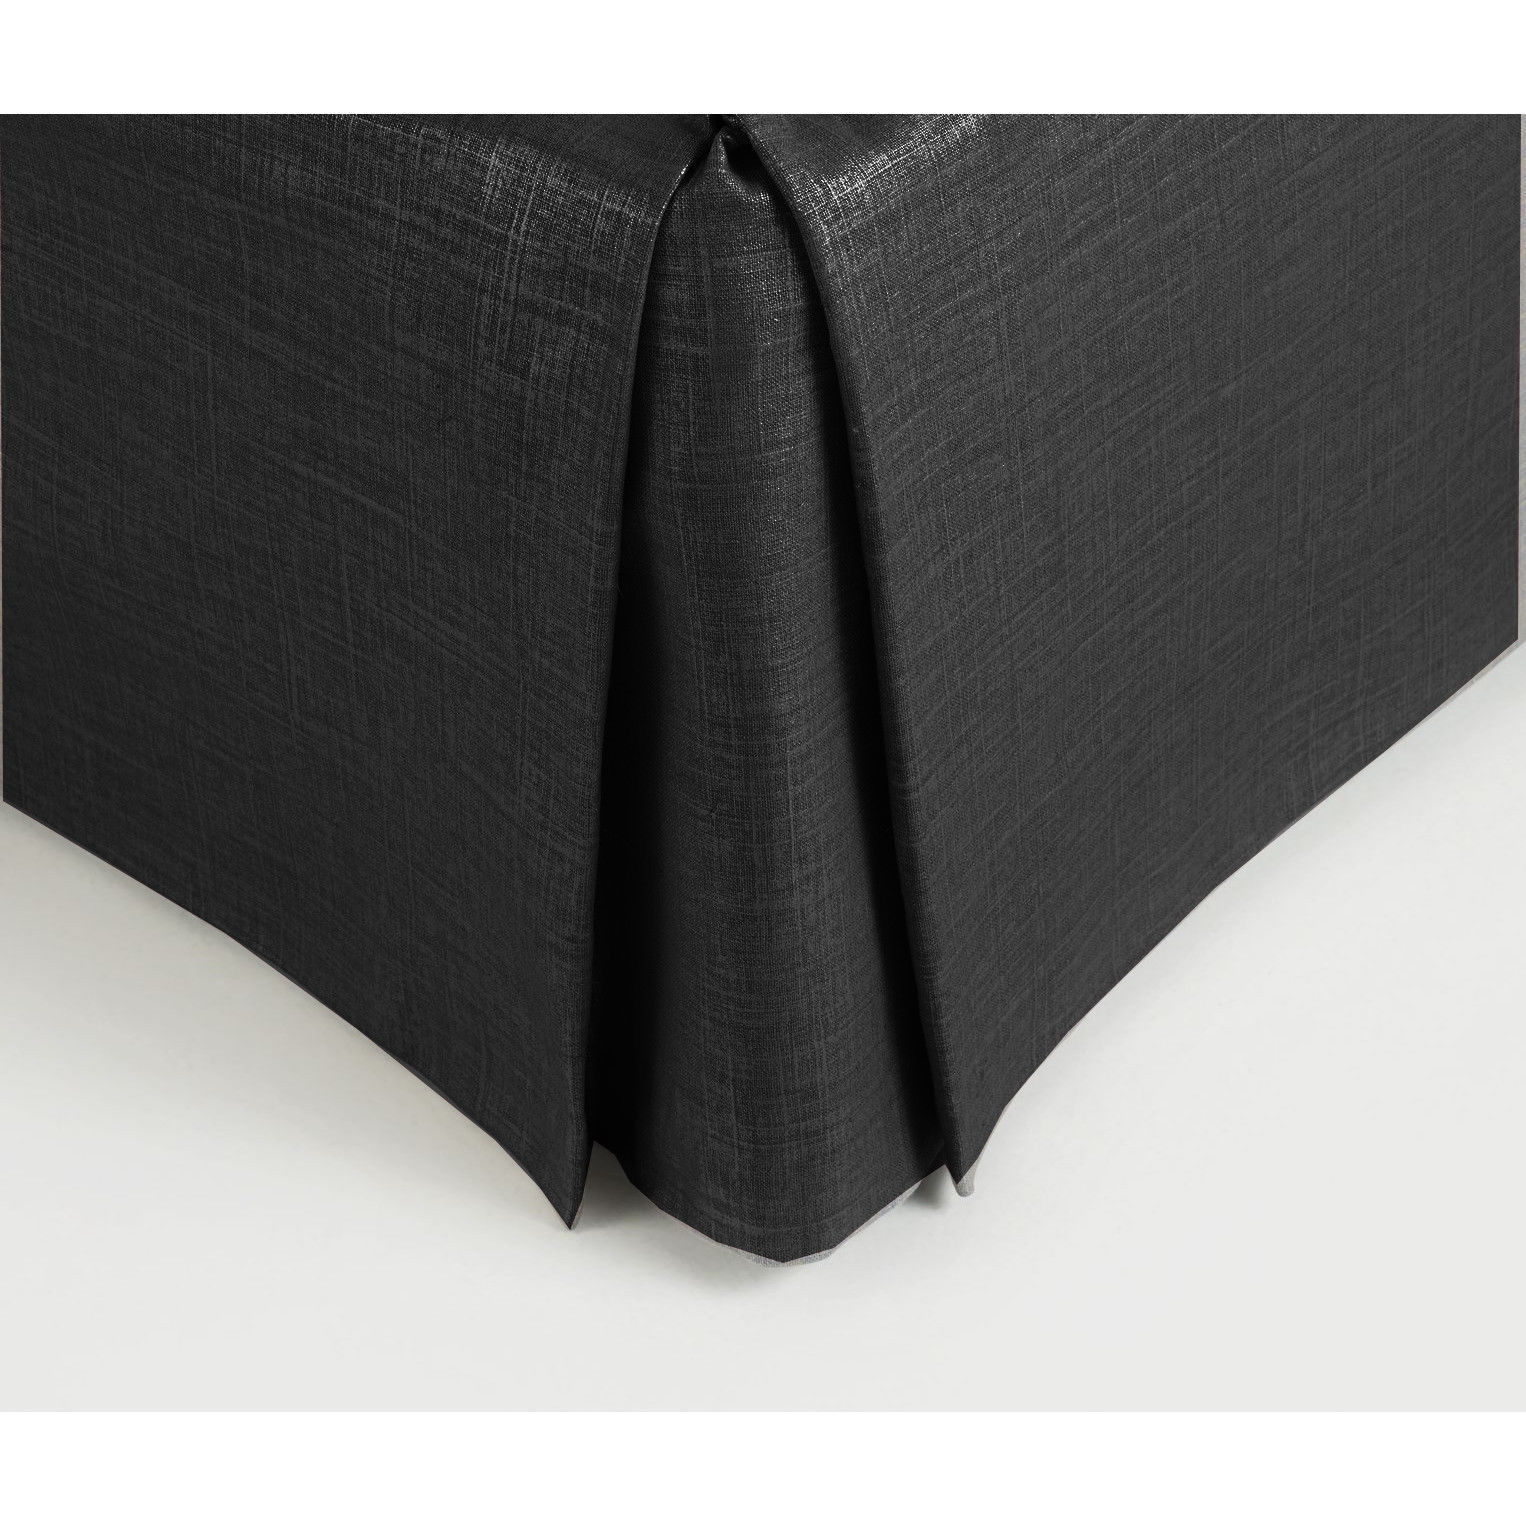 "Primary image for New King Size 15"" Drop 100% Dupioni Silk Box Pleated Bedskirt/Valance - Black"